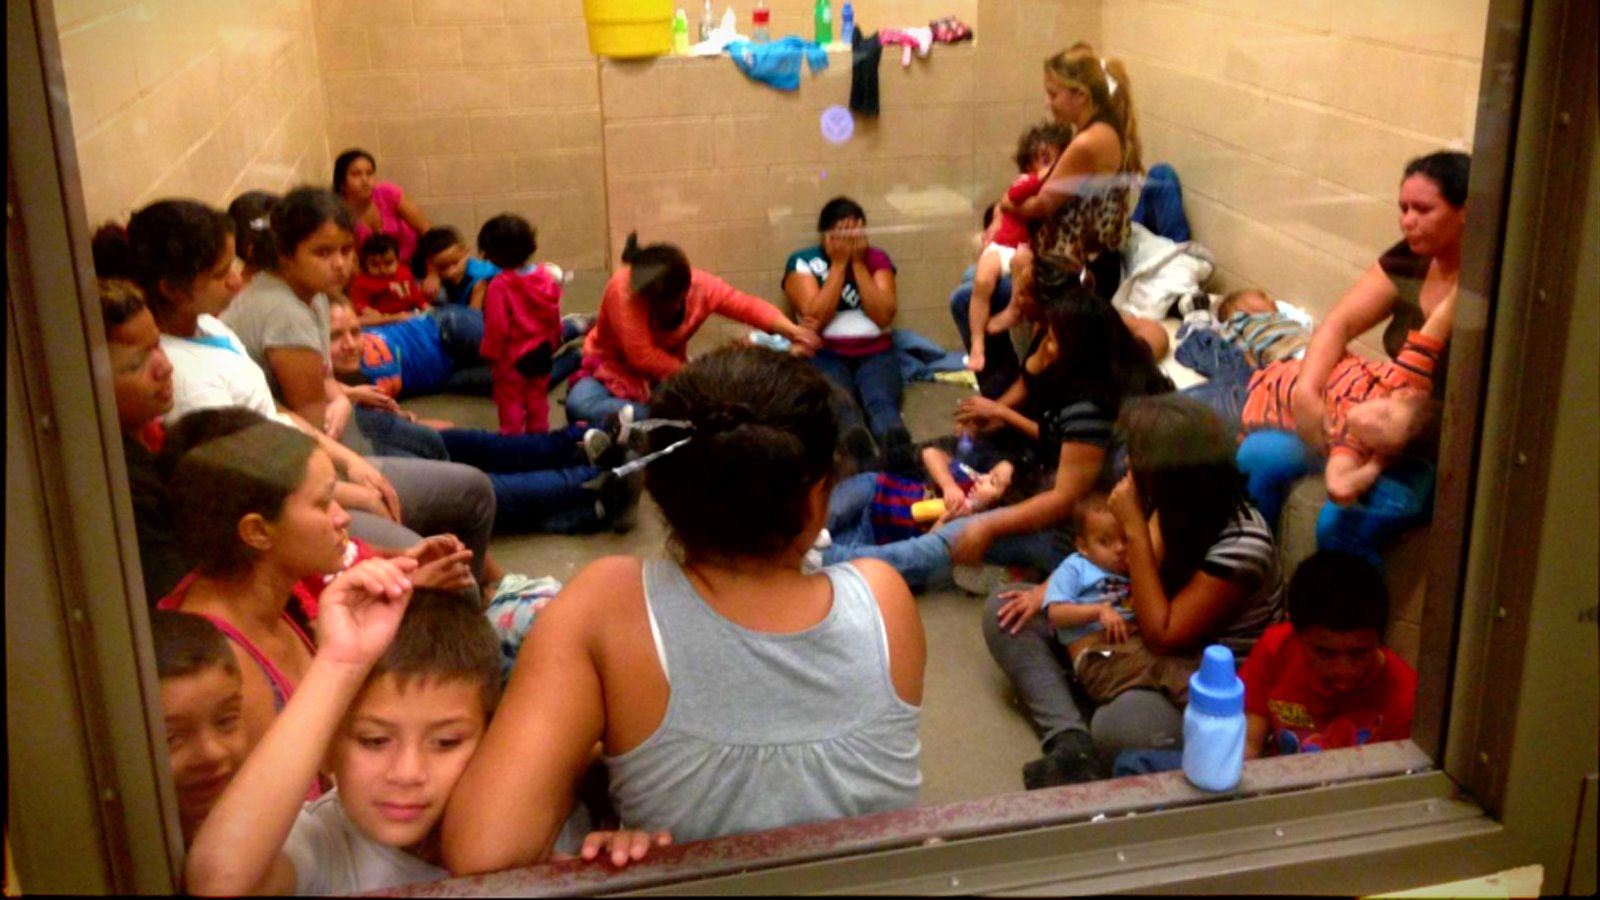 Migrants, among them many women and children, detained at a border patrol station in Texas, United States